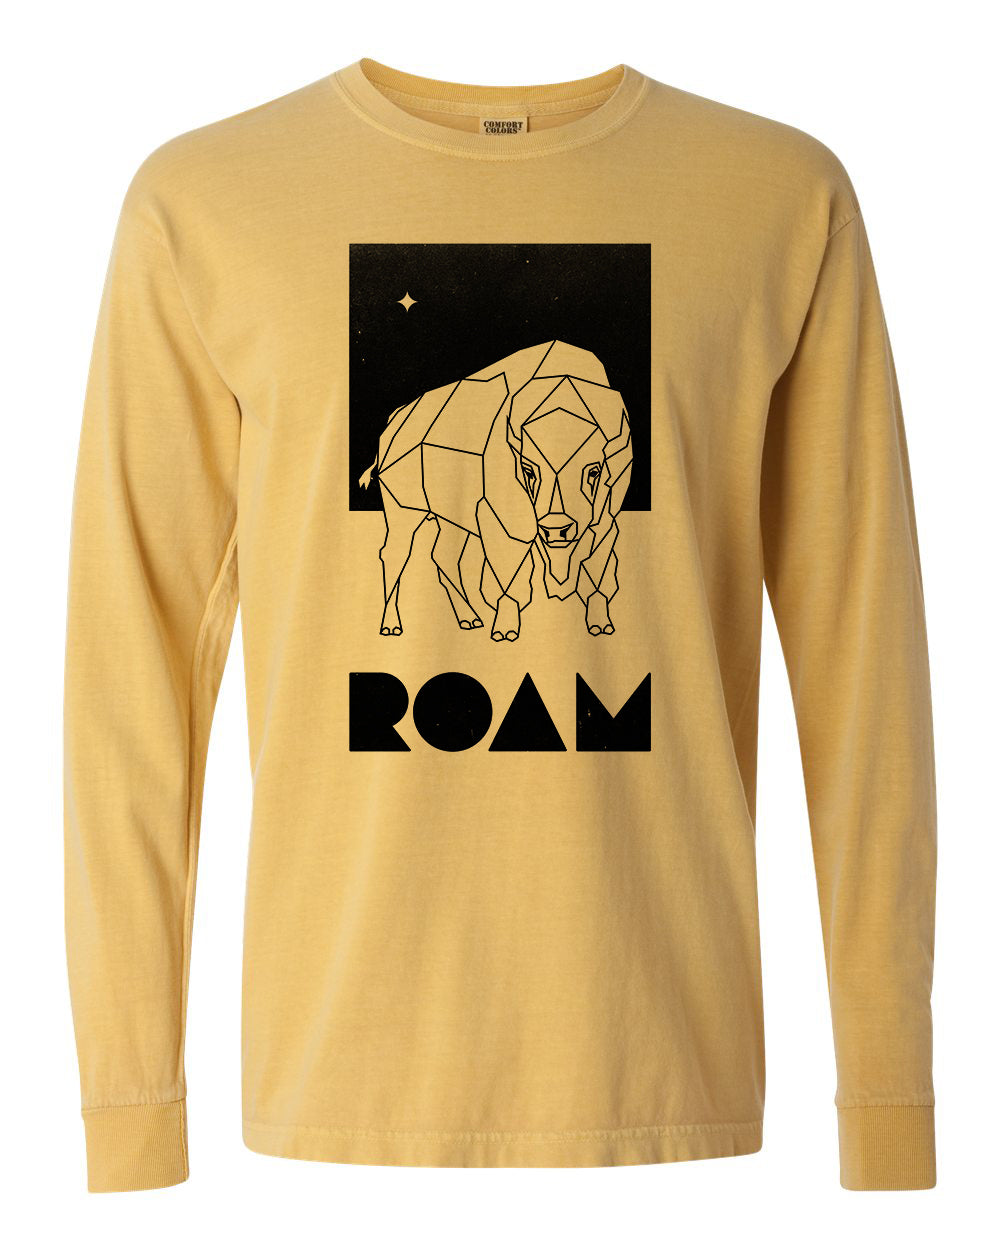 North Star Long Sleeve - Mustard - Front